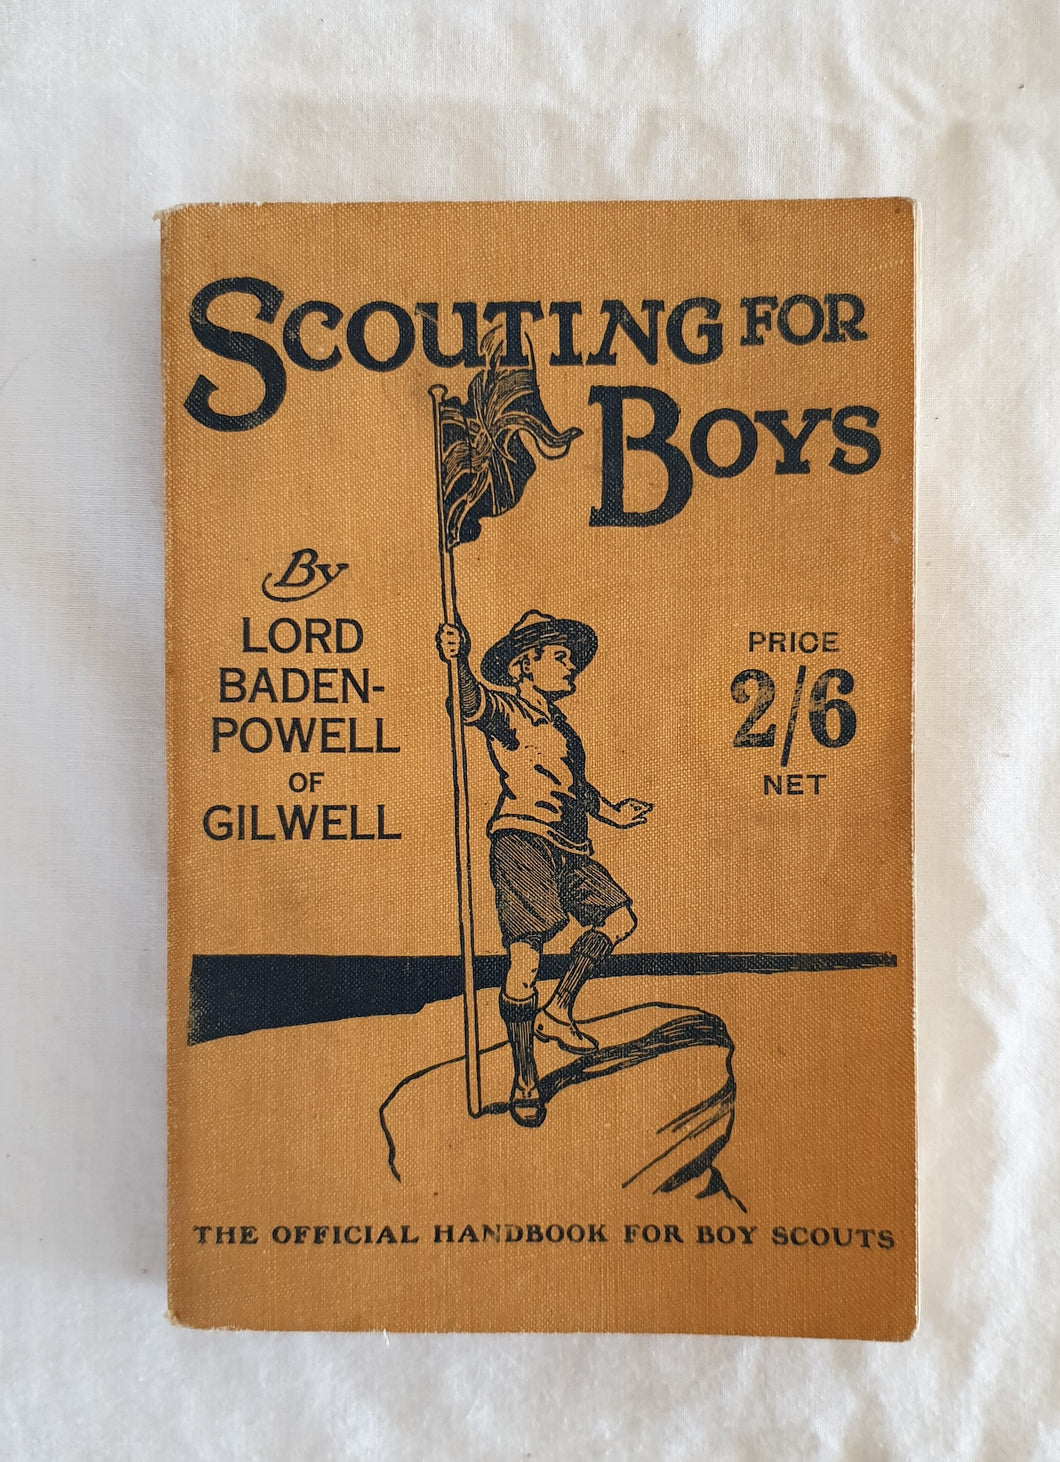 Scouting For Boys by Lord Baden-Powell of Gilwell